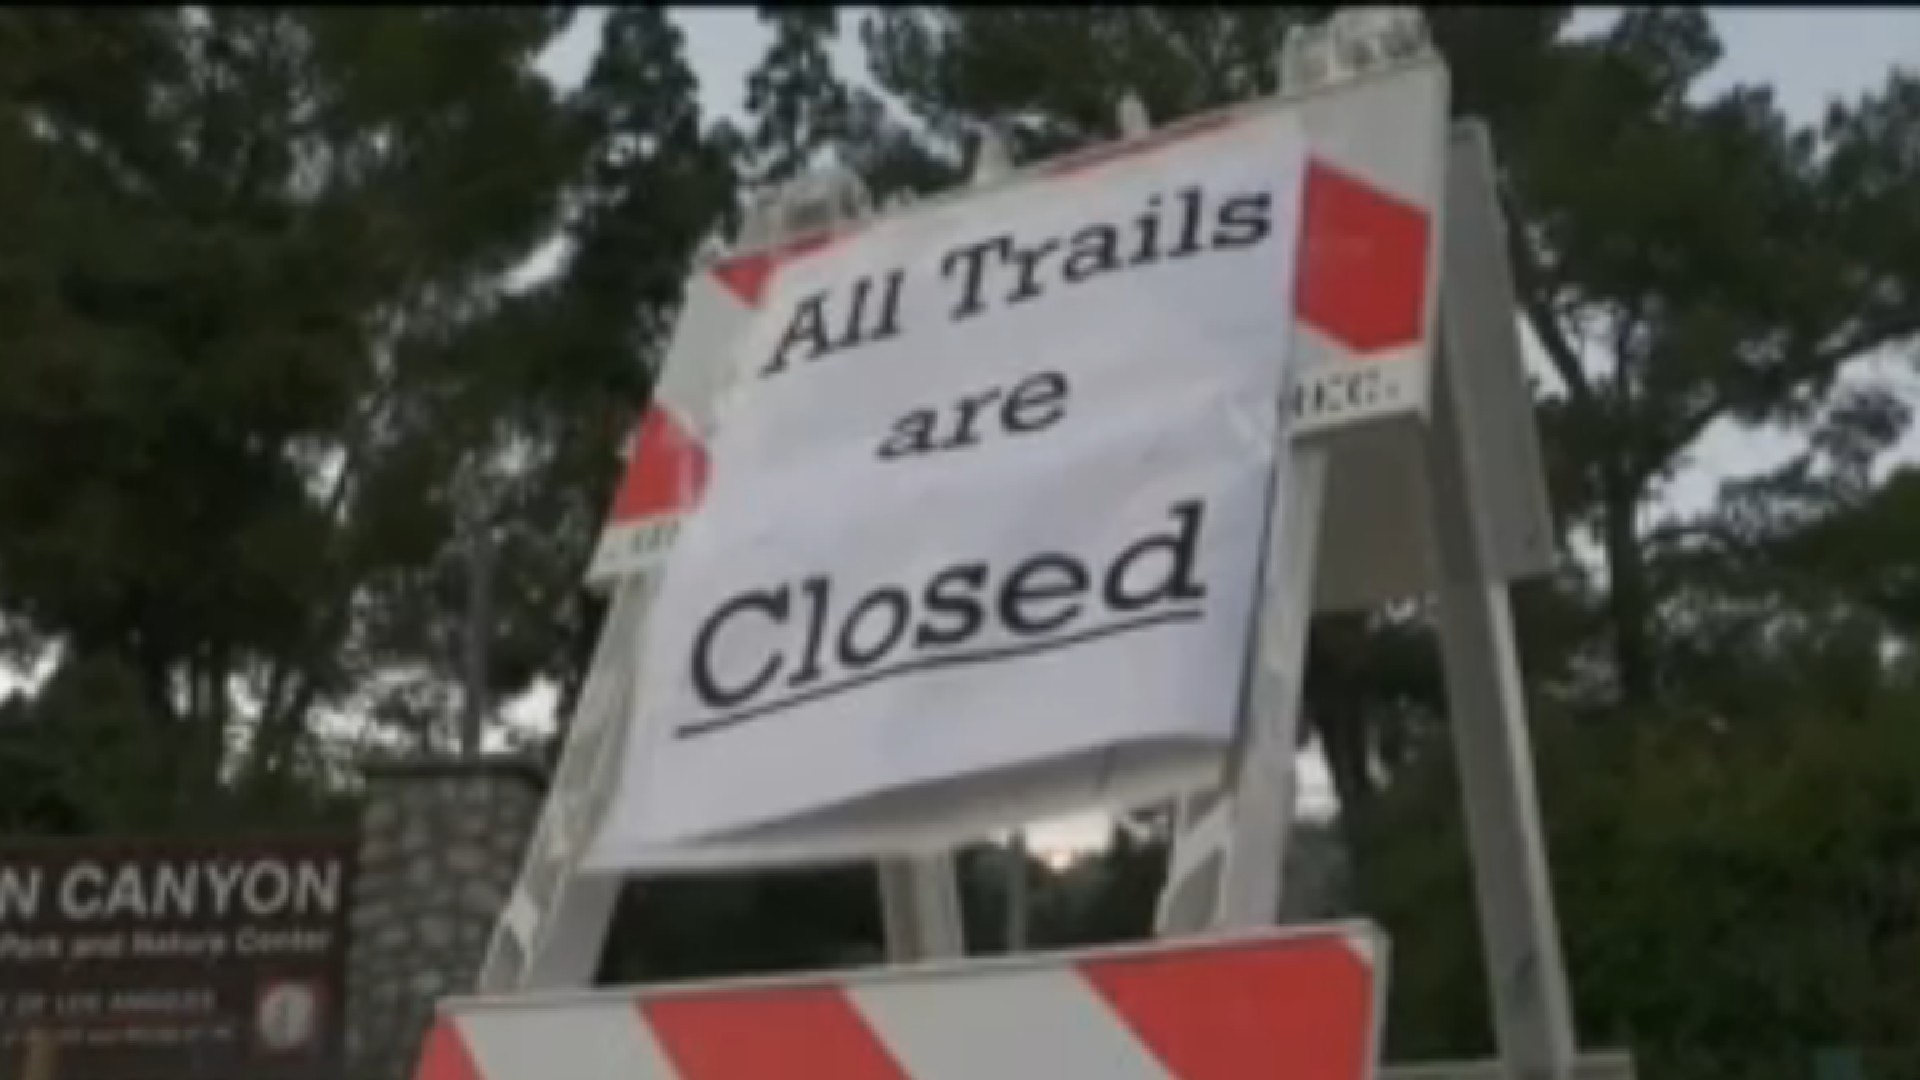 A trail closure is sign is posted in Eaton Canyon on May 24,